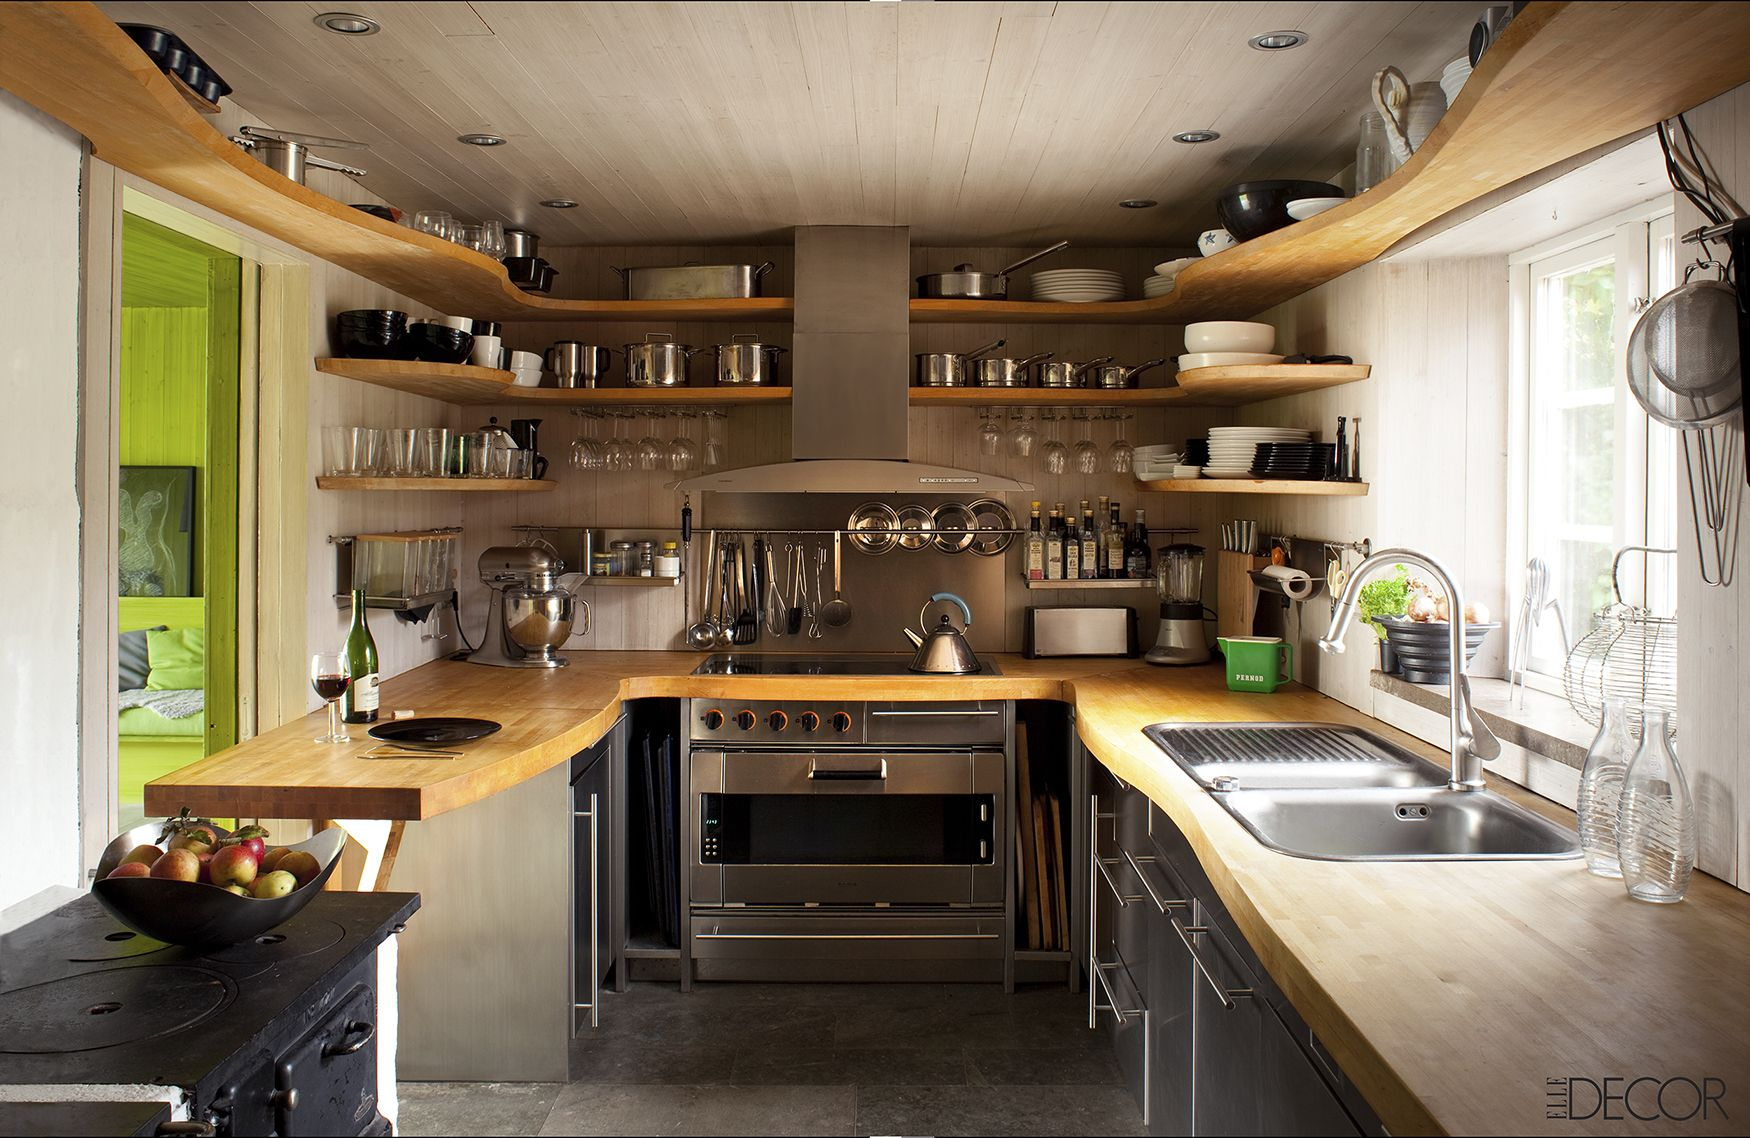 nice home design.  50 Small Kitchen Design Ideas Decorating Tiny Kitchens